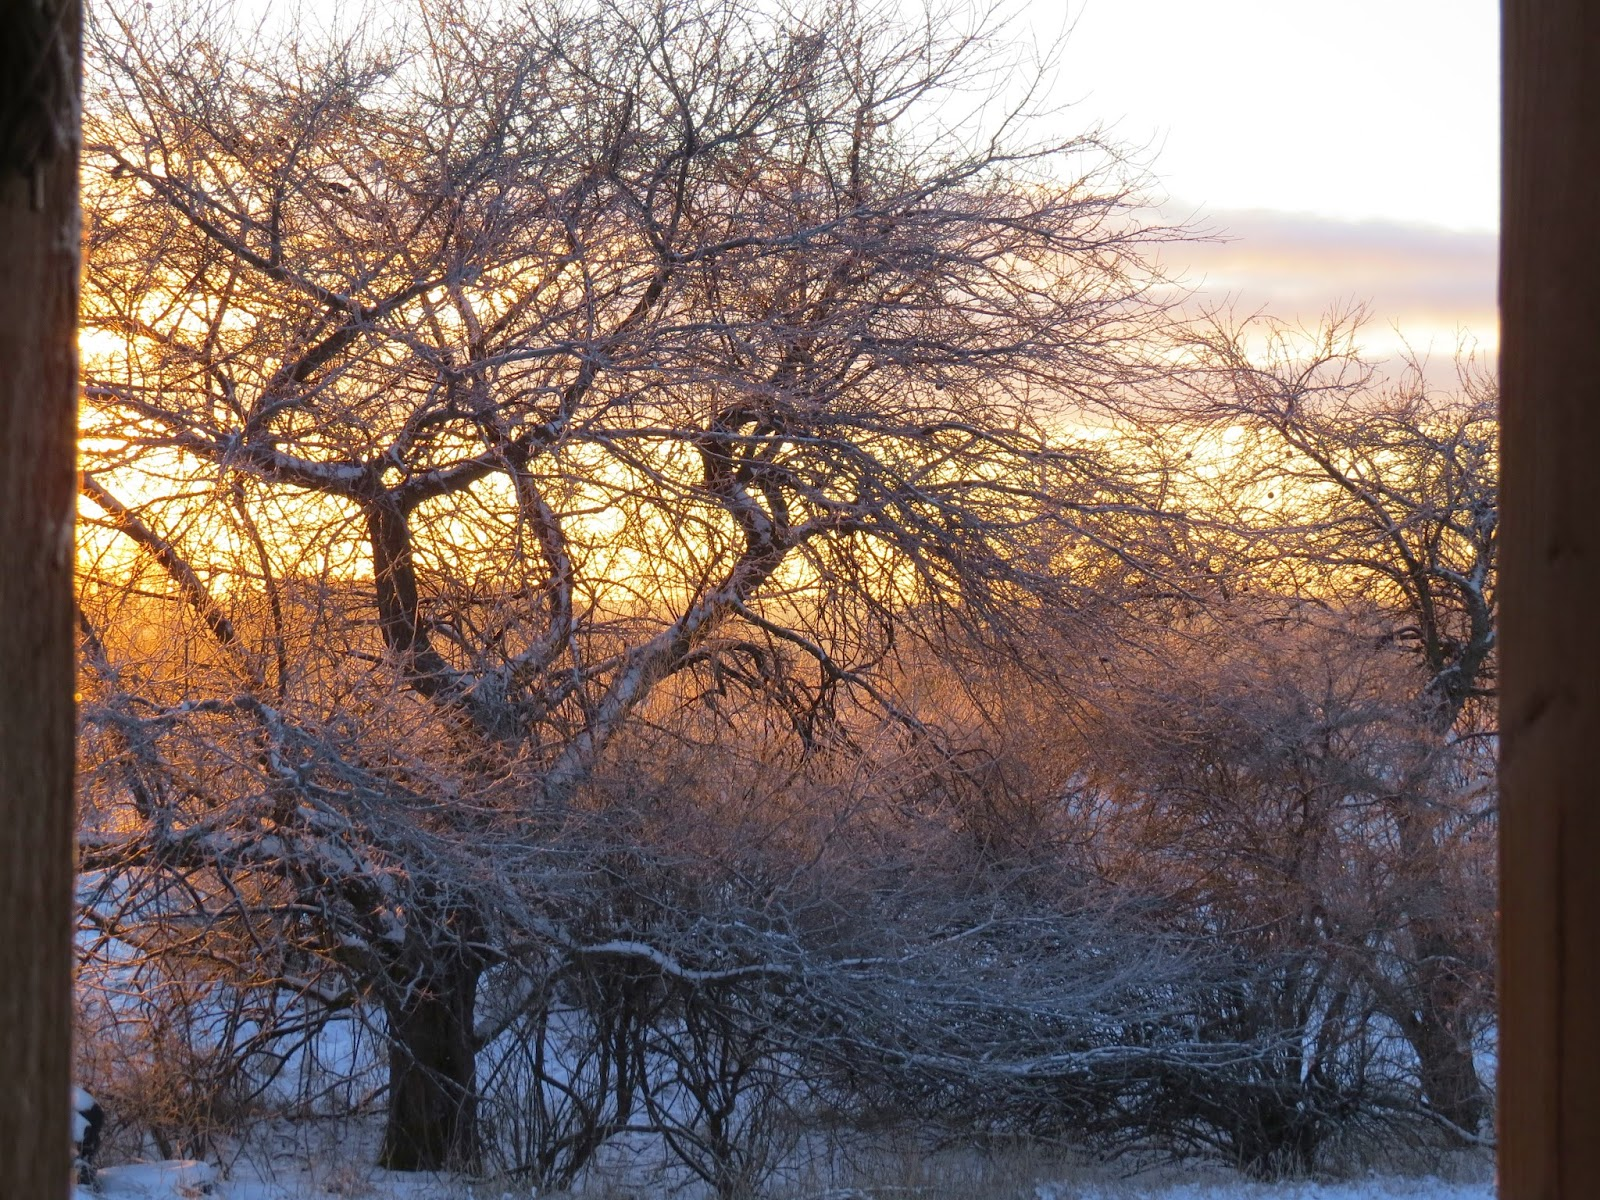 sunrise on frosty trees